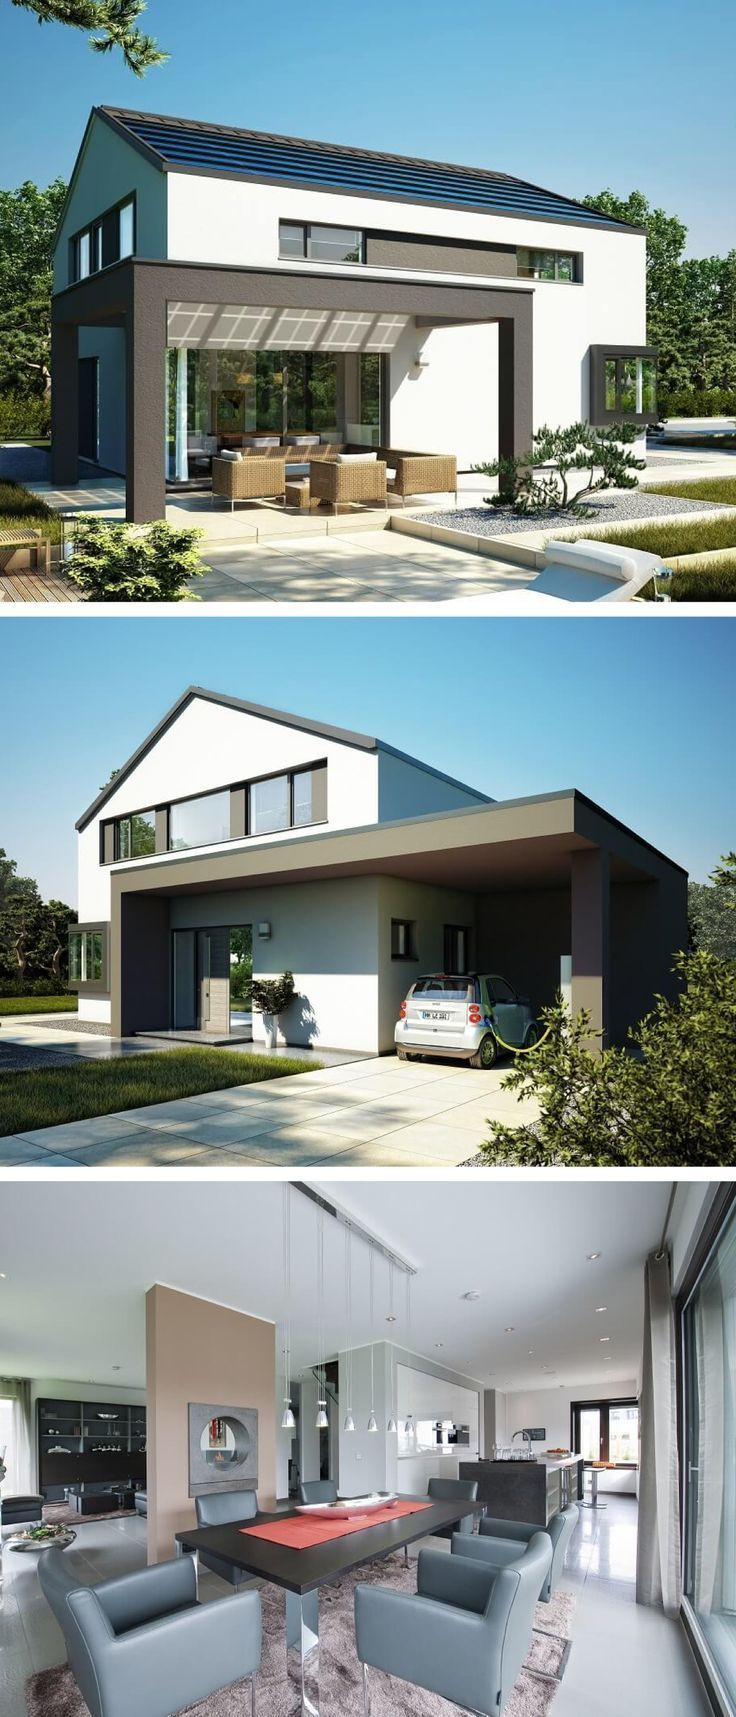 Detached House With Modern Gable Architecture Pitched Roof Carport Pergola Architecture Carport Det Mit Bildern Carport Modern Einfamilienhaus Bauhausstil Haus